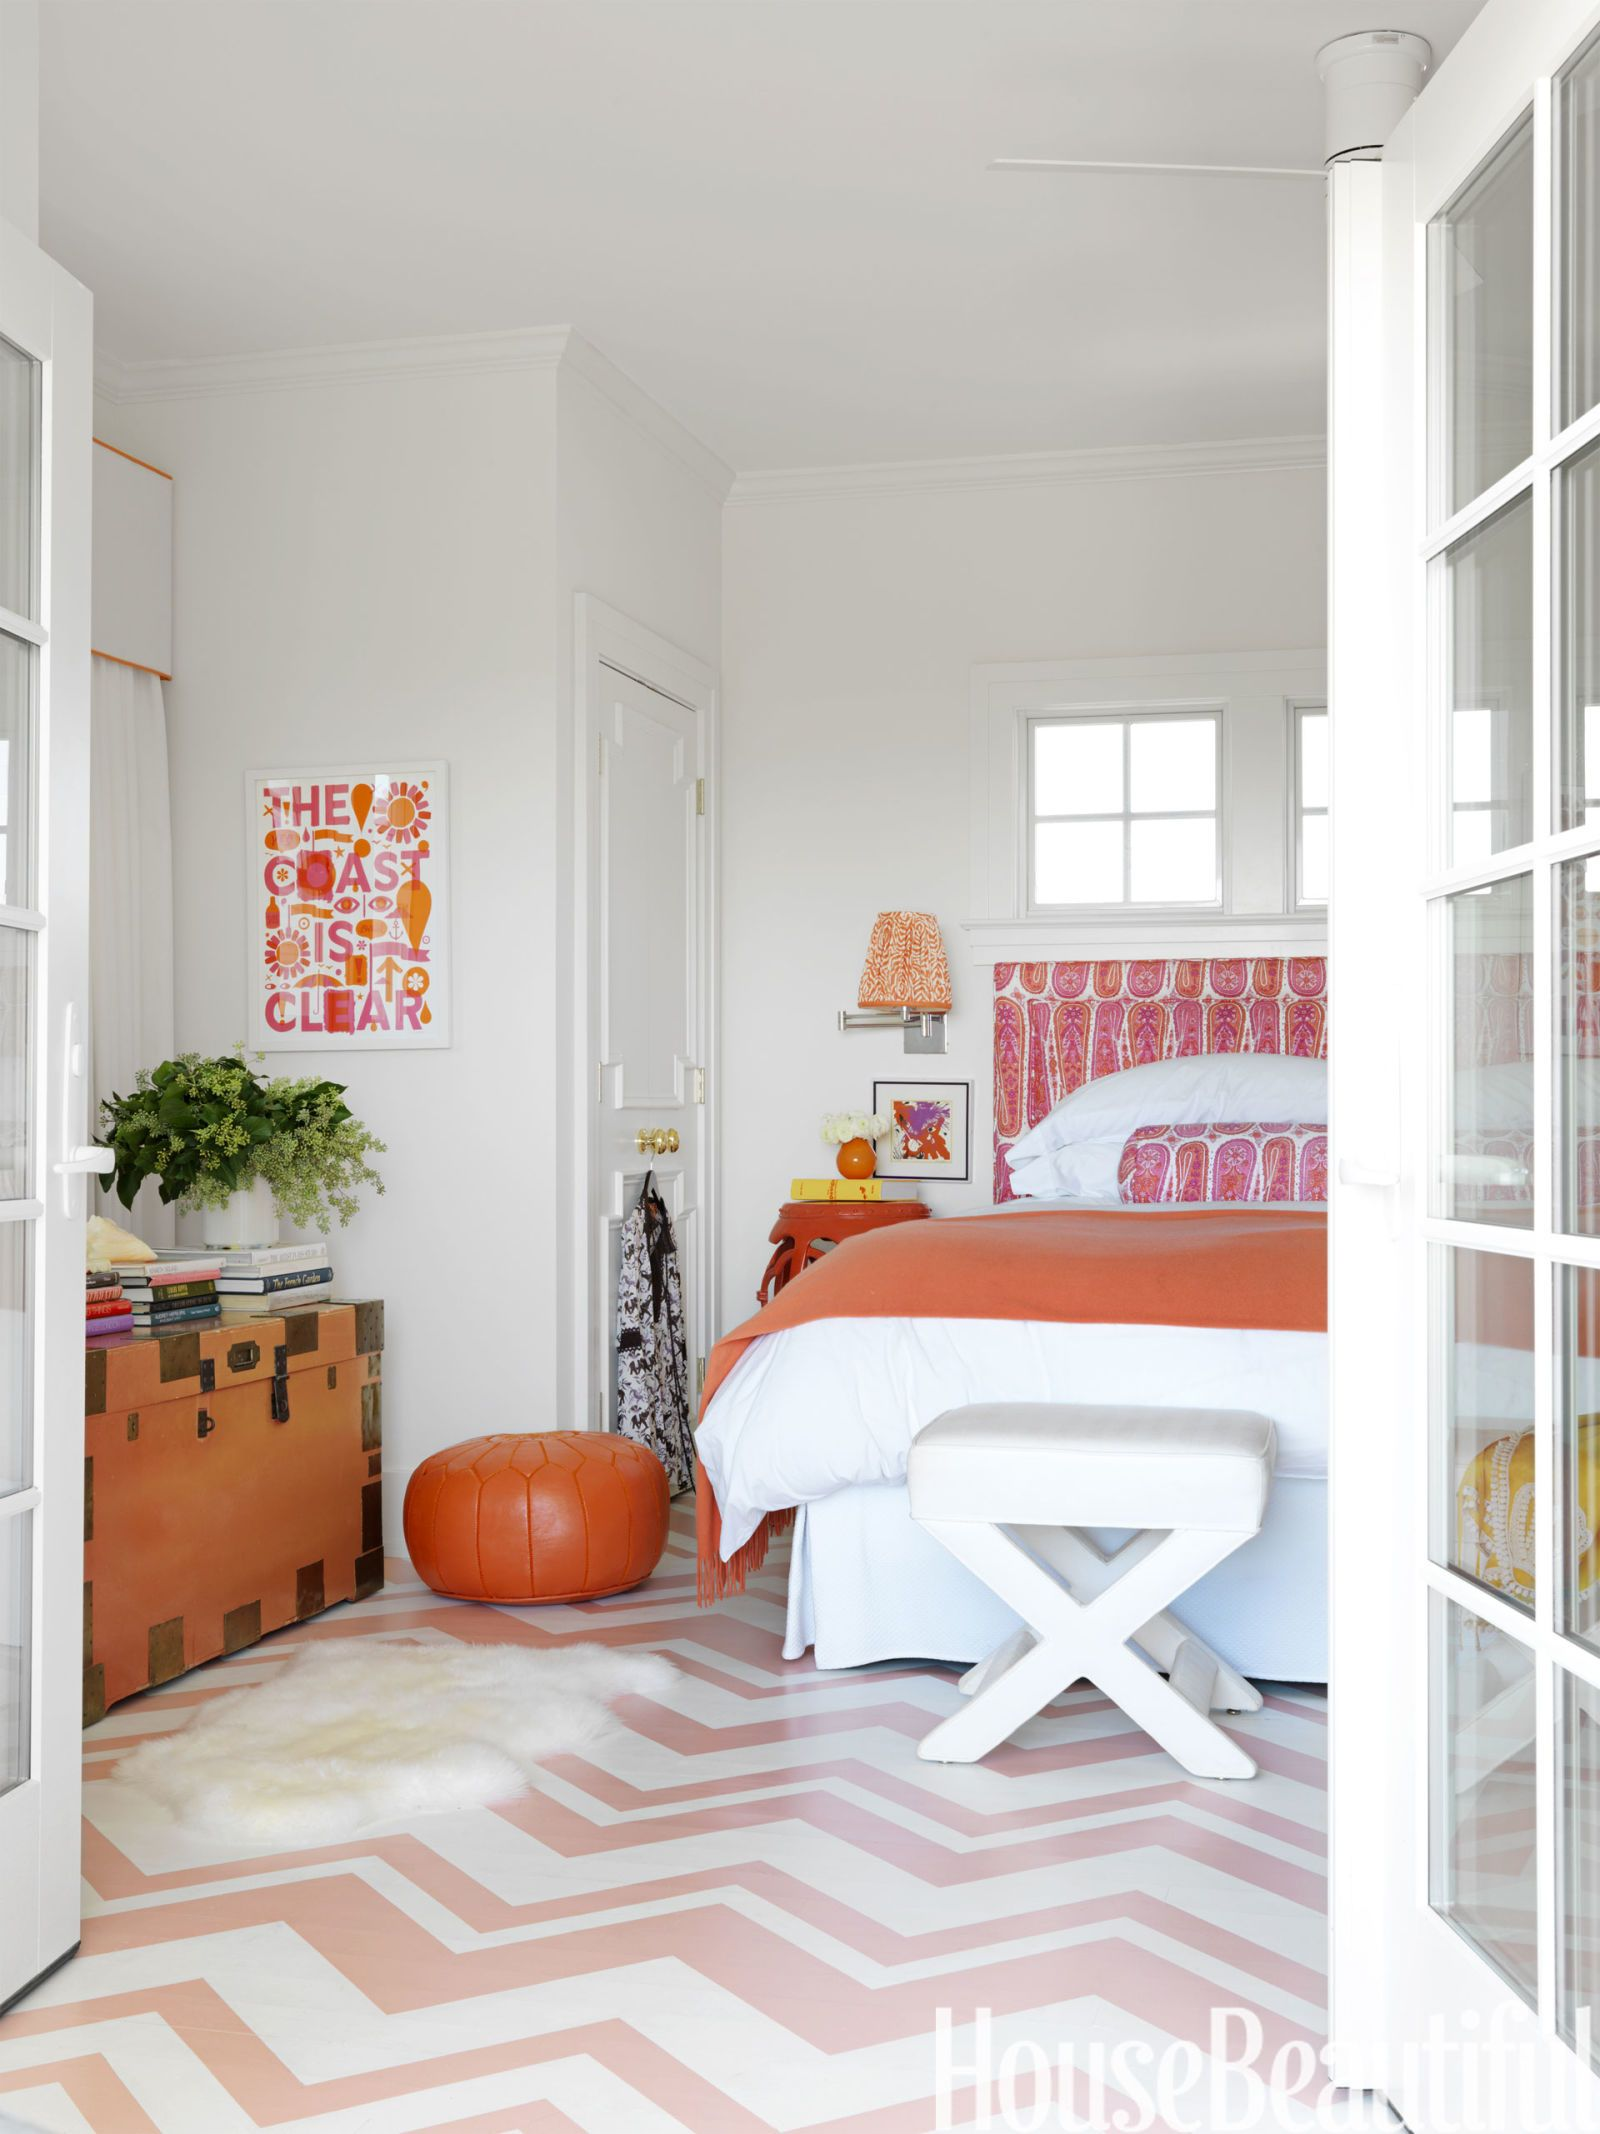 Retro Beach House Decorating Ideas \u0026#150; Colorful Summer Design